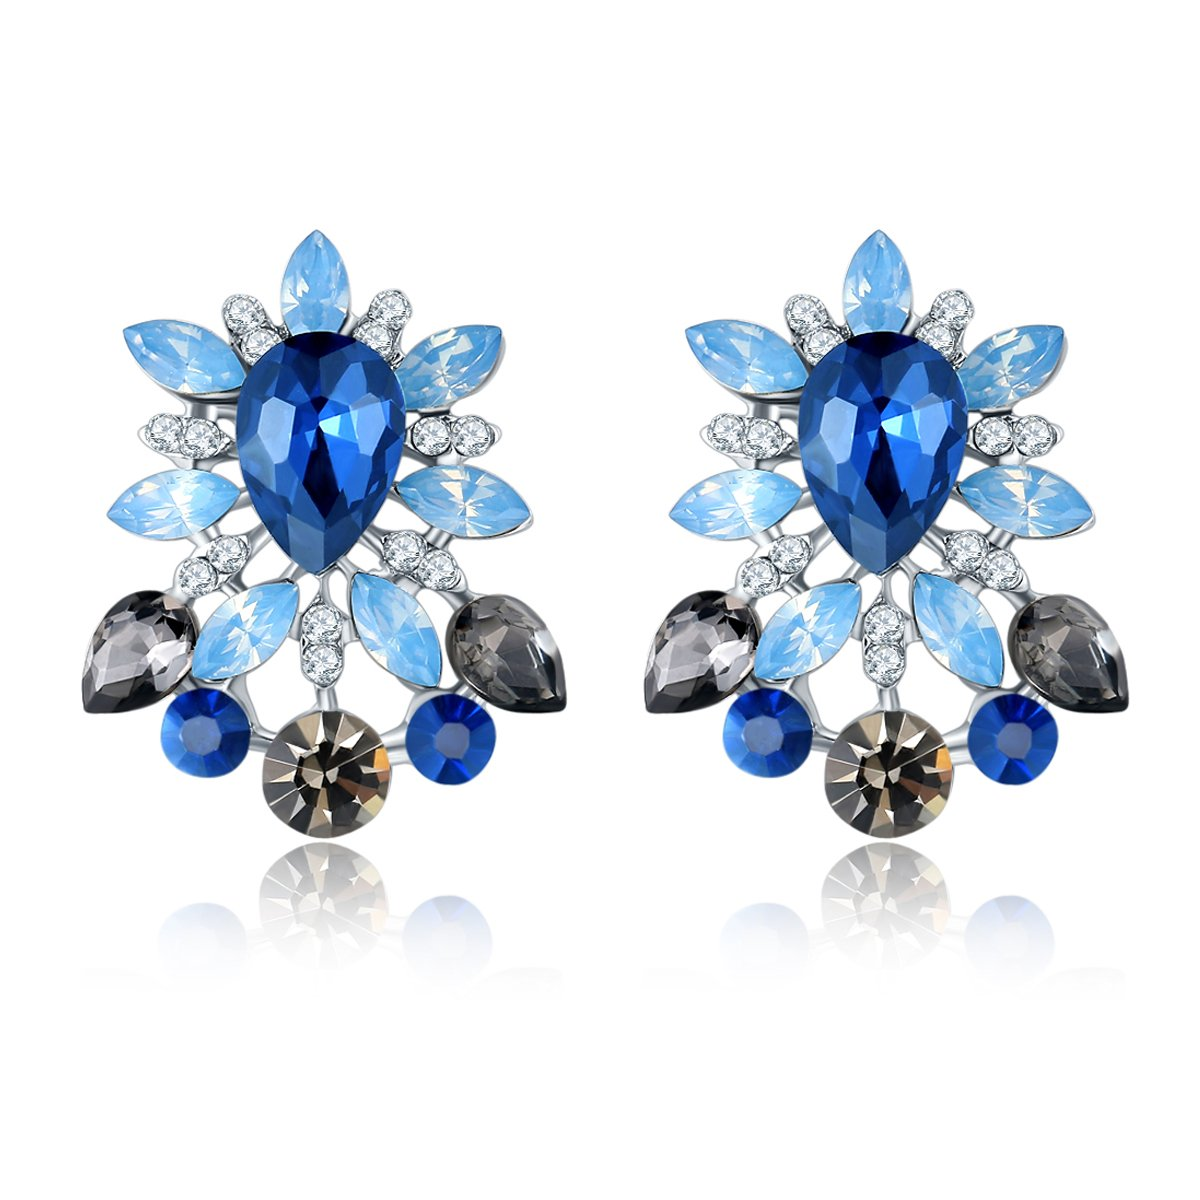 Jewels Galaxy Dreamy Blue Sapphire Floral Crystal Elements Limited Edition Delicate Design Earrings For Women/Girls Price in India